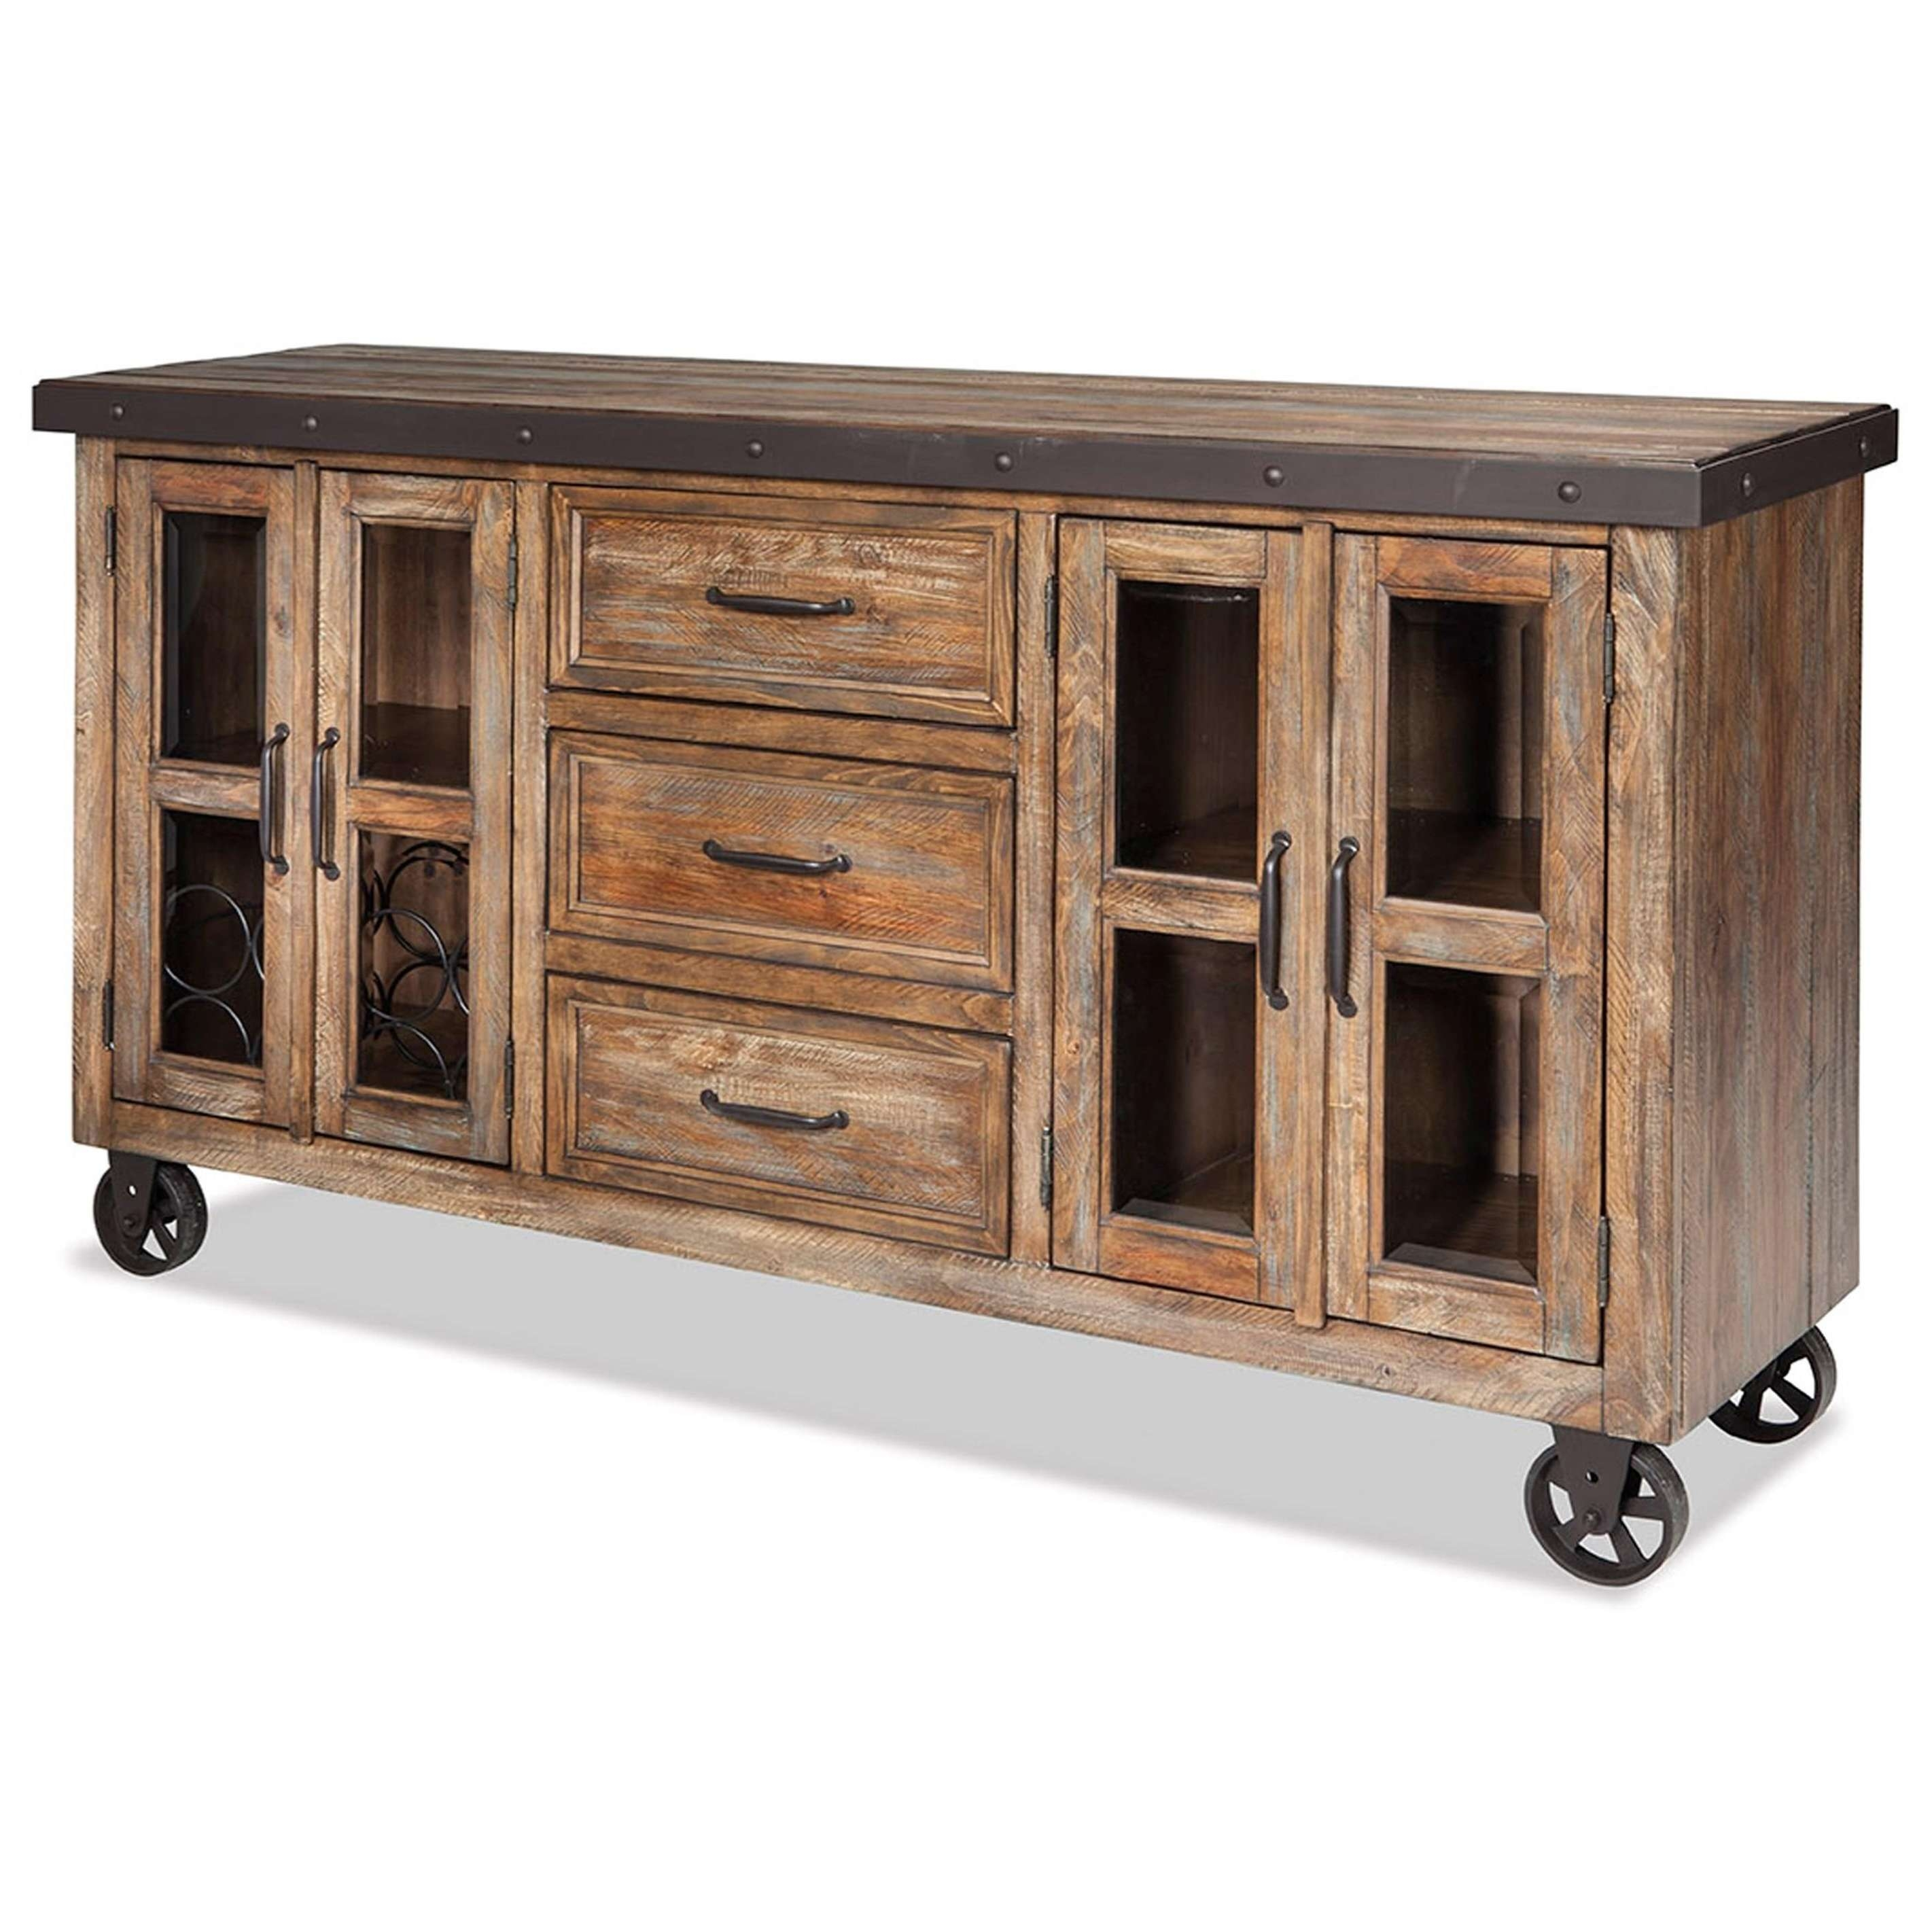 Intercon Taos Rustic Sideboard With Roll Up Media Drawer | Wayside Intended For Rustic Sideboards Furniture (View 8 of 20)